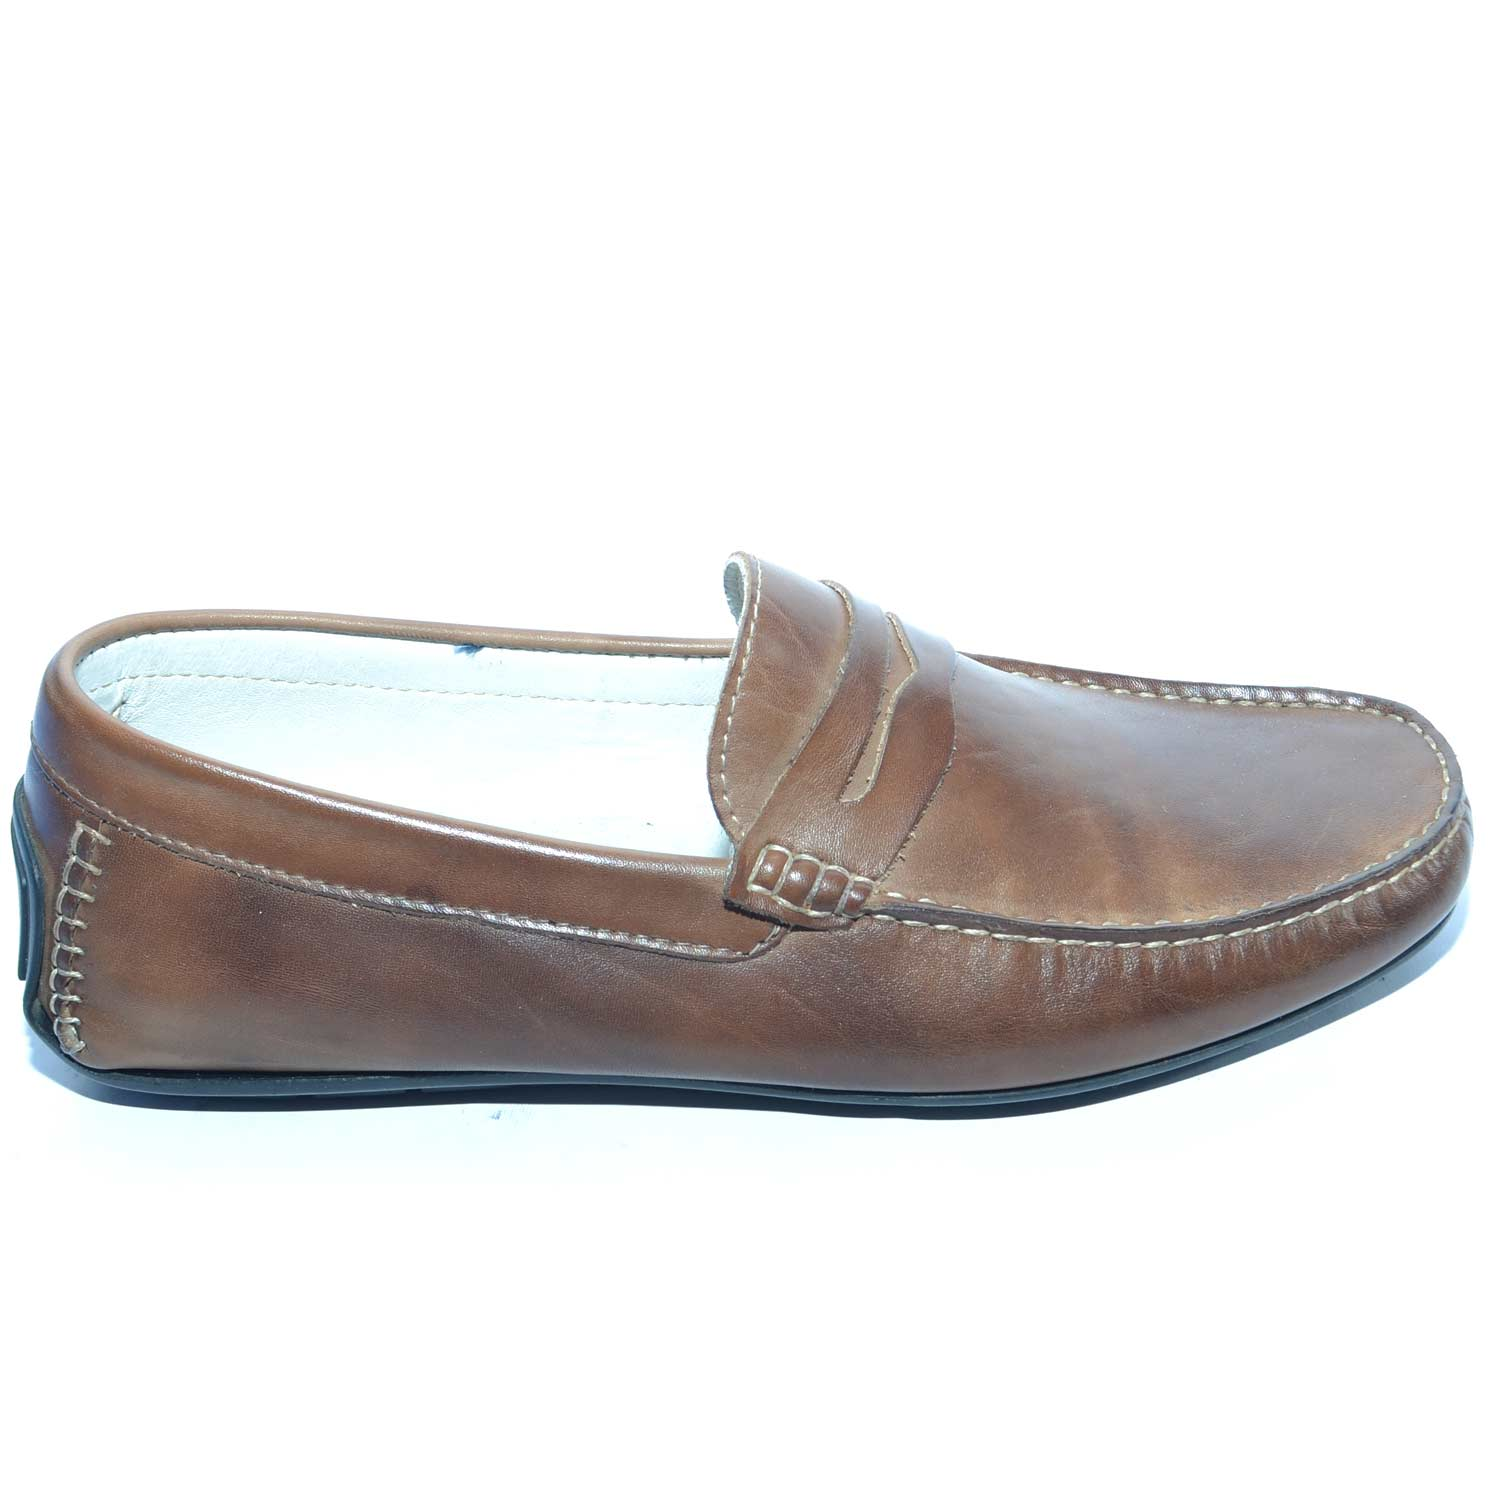 Accessori Shoes Uomo shoes Vendita Scarpe Car e Malu online UqPv8XR